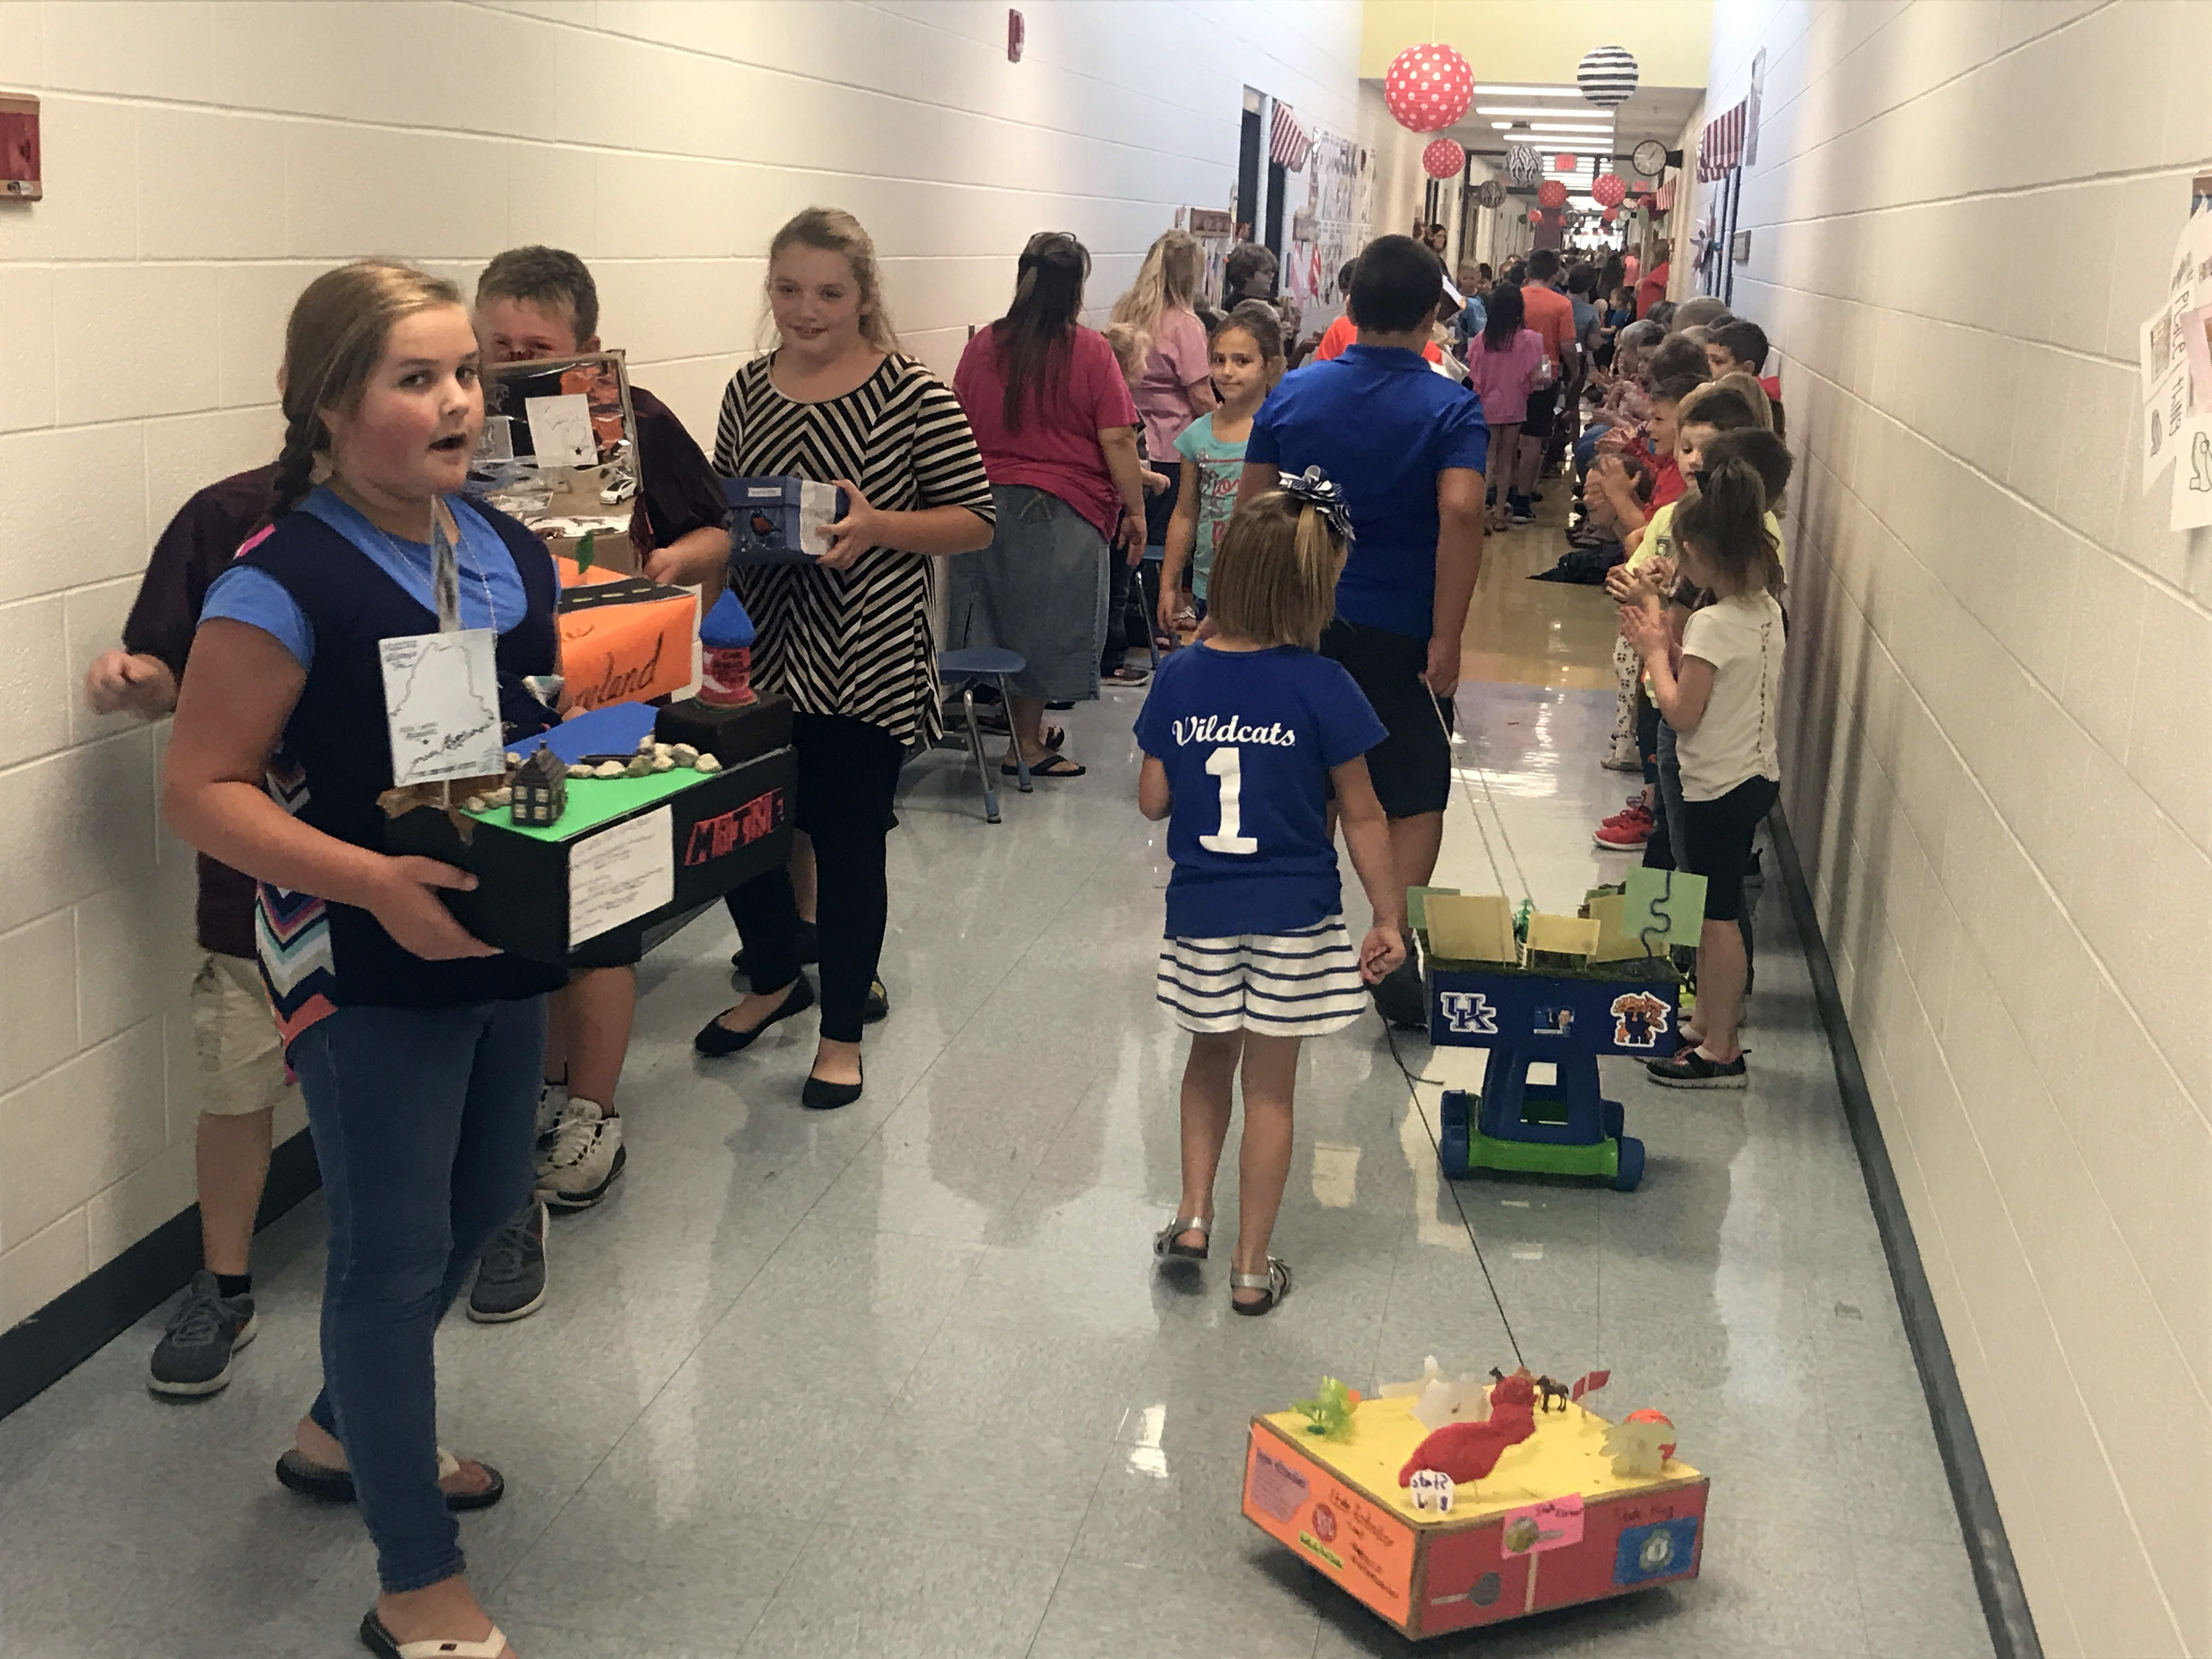 Students parade their states floats down the main hallway while classrooms line up along the parade route.